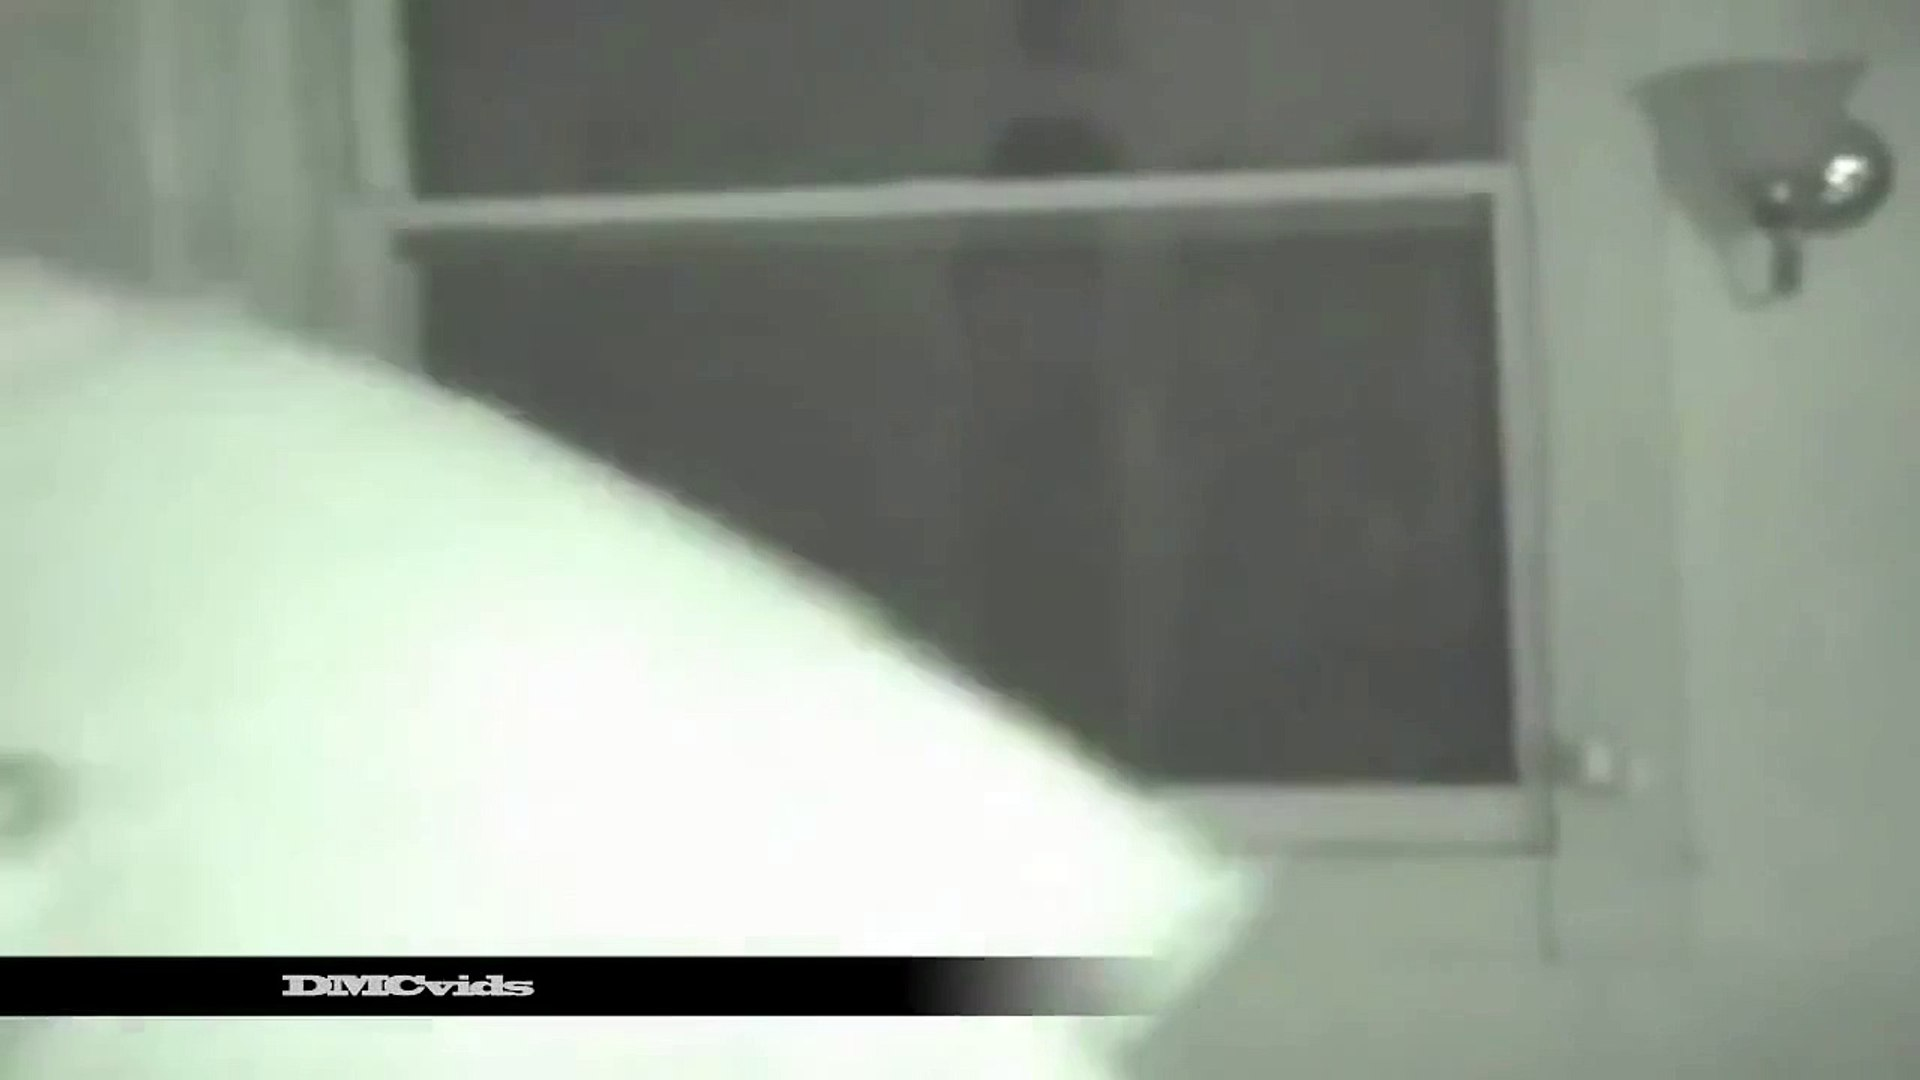 2013 UFO Footage - UFO Disclosure 2013 - Alien Caught on Tape - REAL or fake  - October 2013